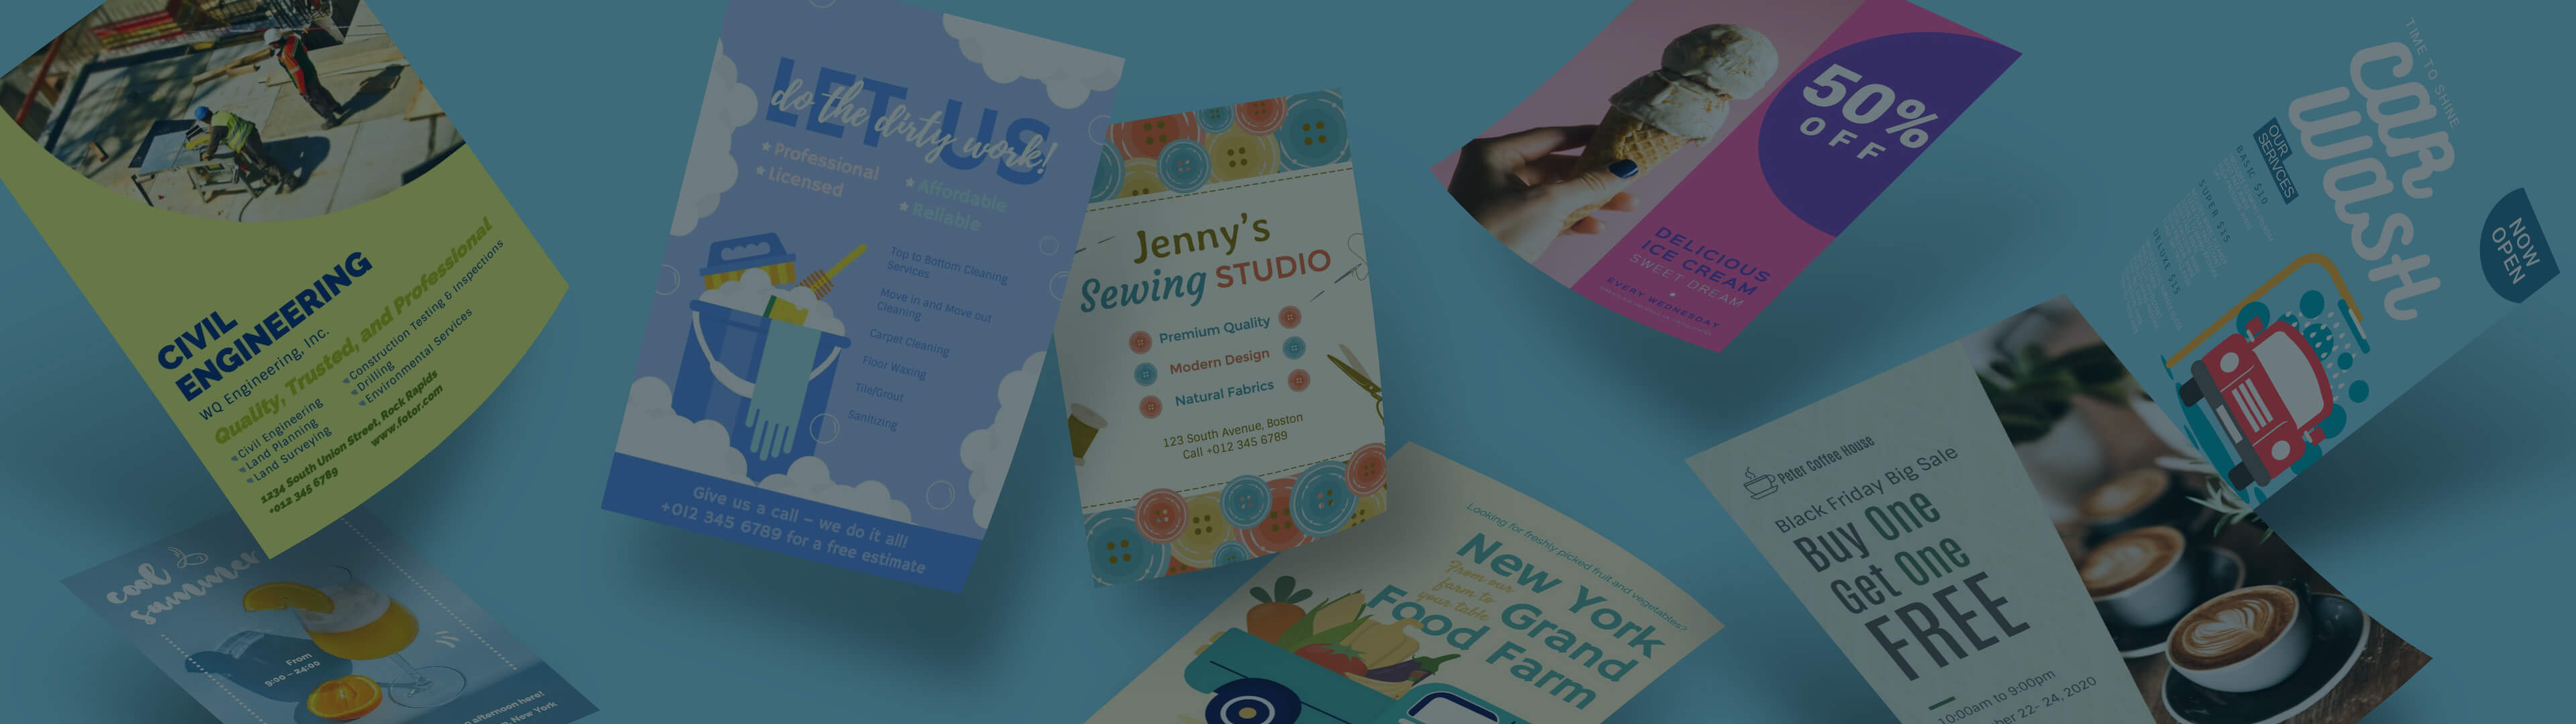 How to Make a Flyer with Free Flyer Maker Online | Fotor